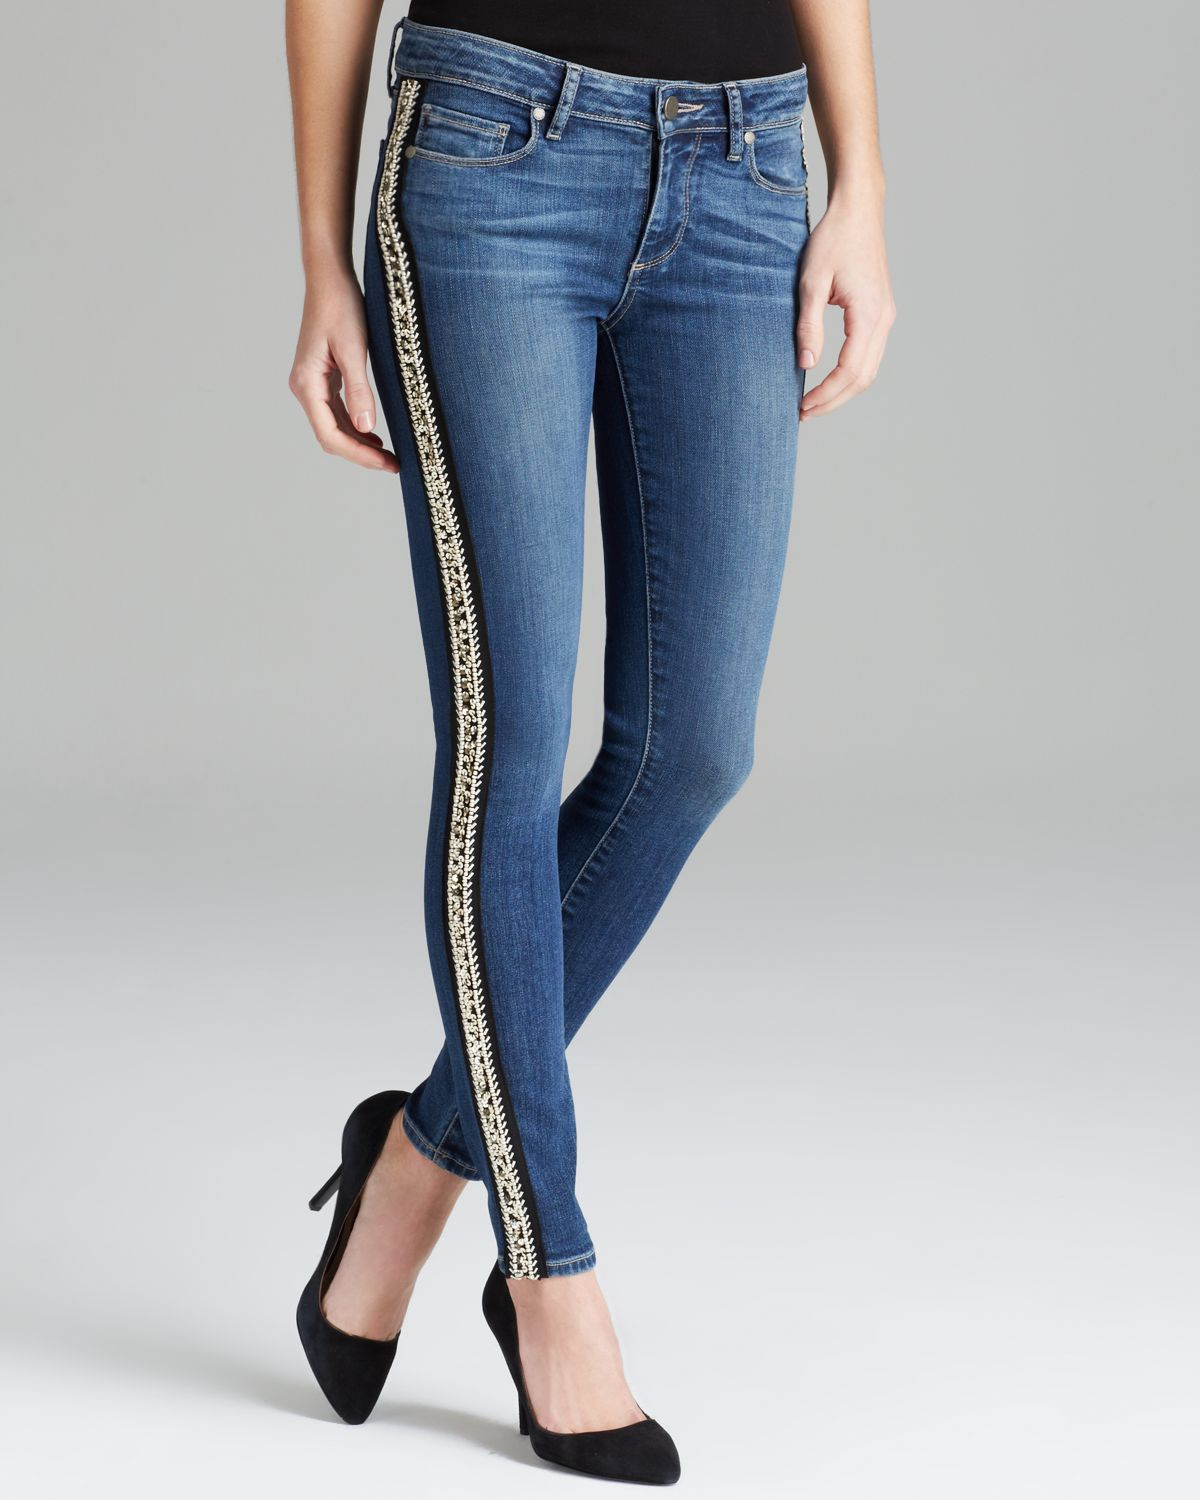 Skinny and appealing paige jeans